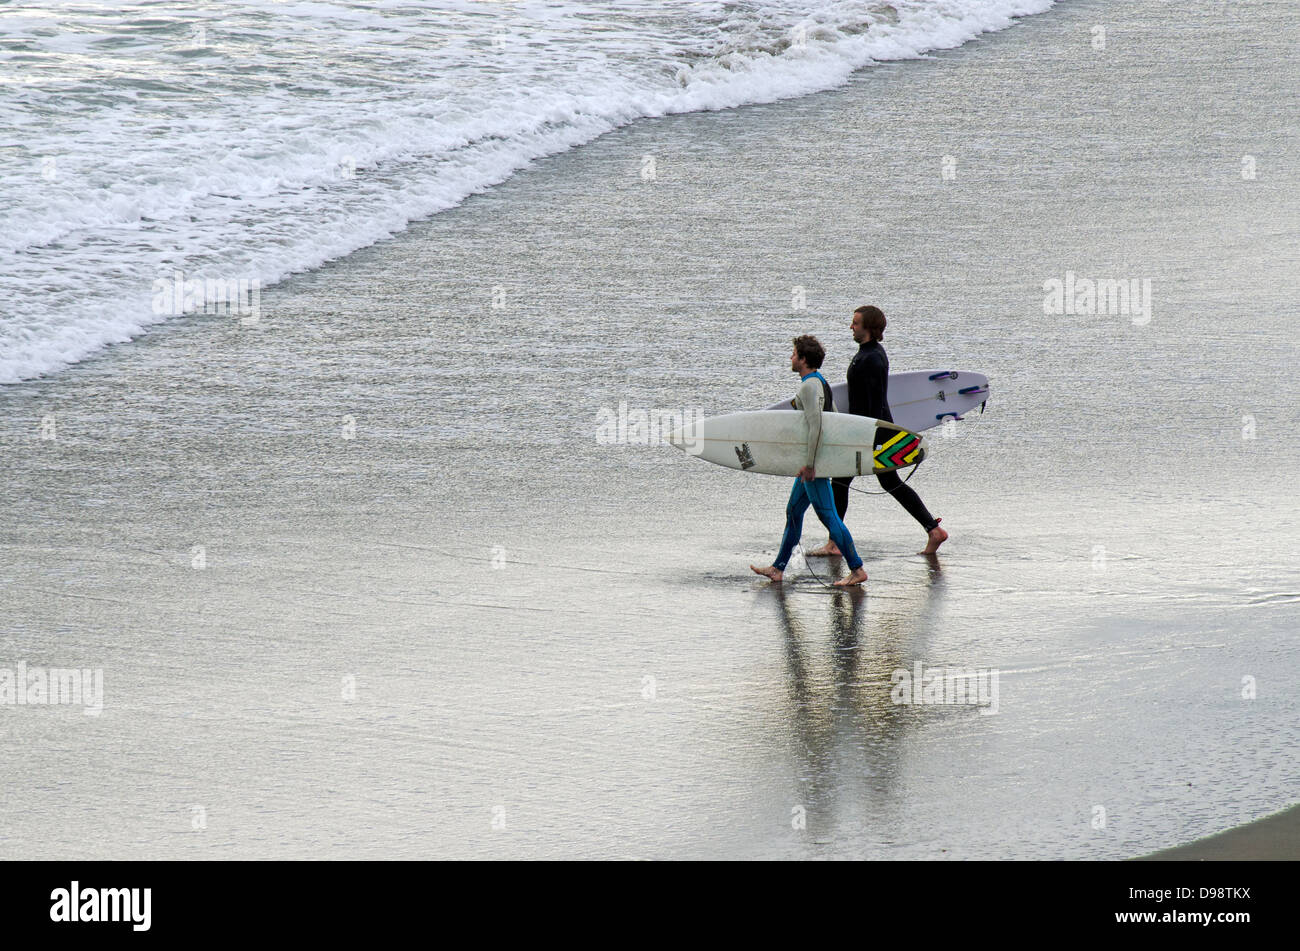 Two young wave surfers in Piha beach near Auckland, New Zealand Stock Photo